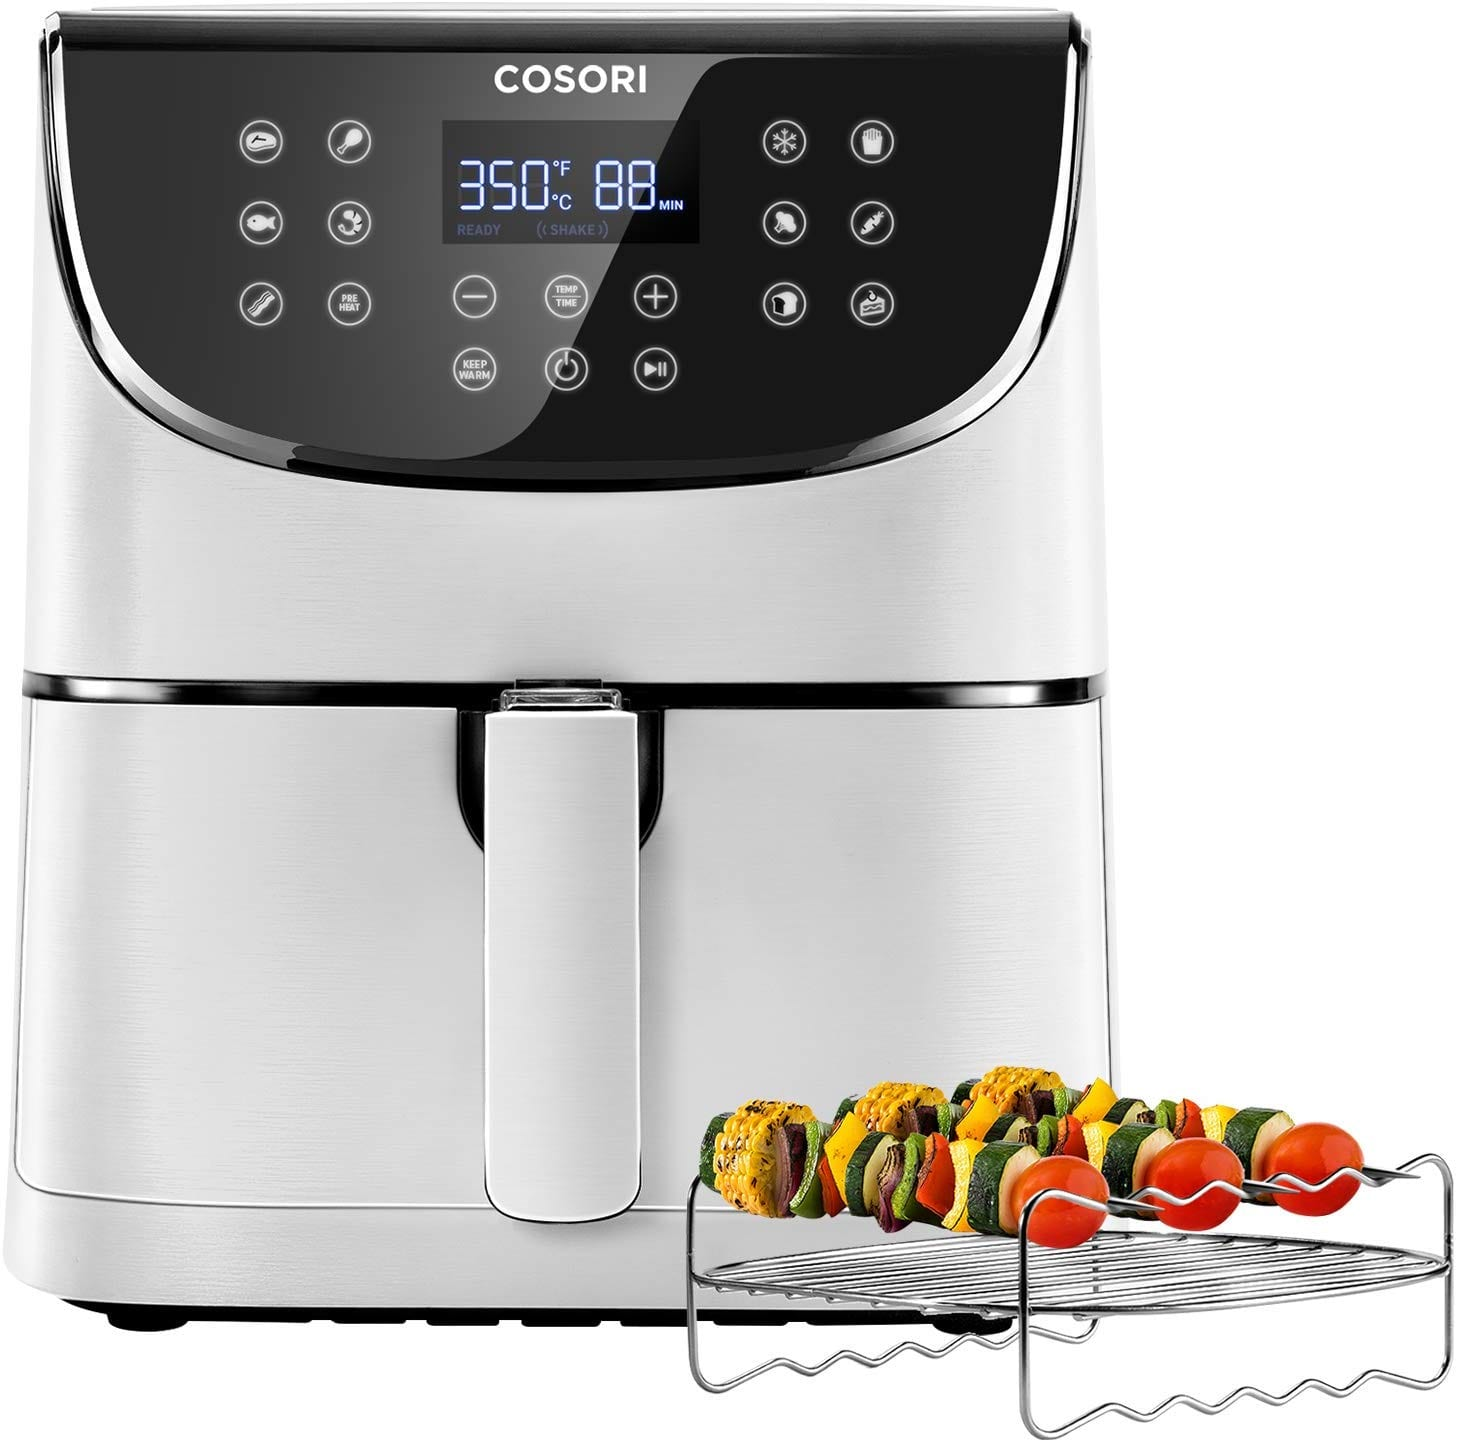 COSORI Air Fryer oven (3.7QT)